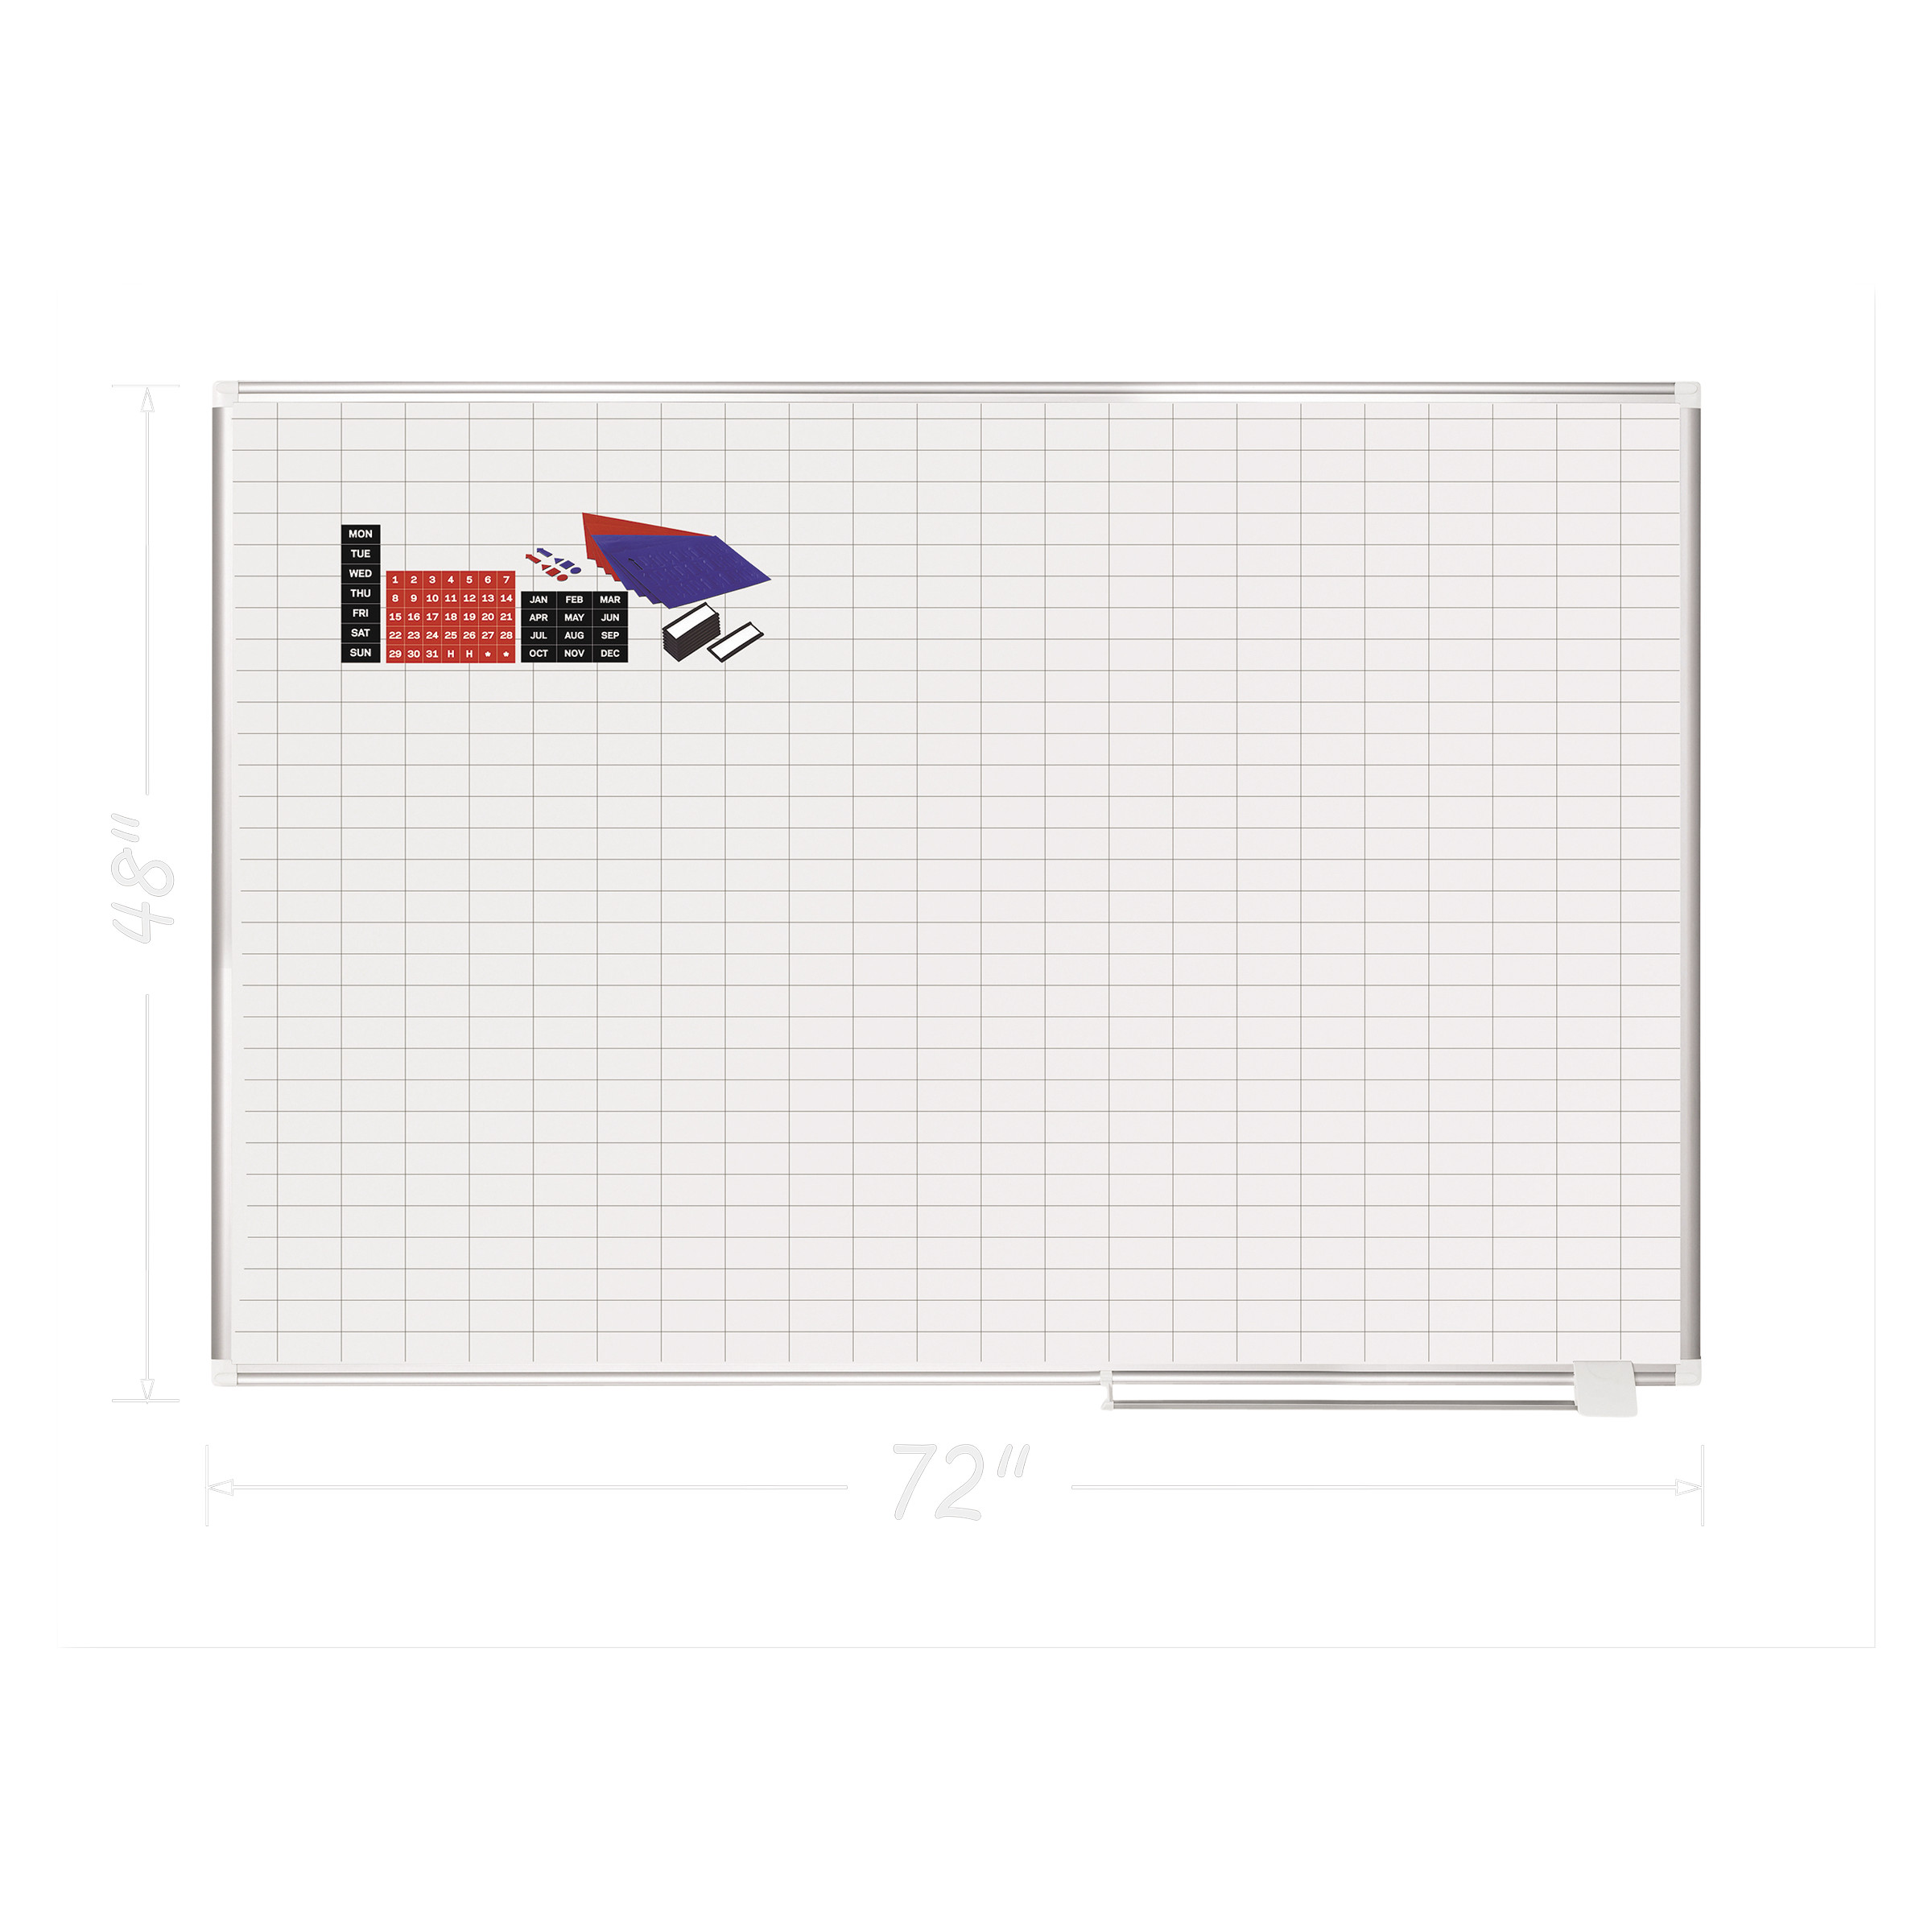 "MasterVision Grid Planning Board w  Accessories, 1x2"" Grid, 72x48, White Silver by BI-SILQUE VISUAL COMMUNICATION PRODUCTS INC"